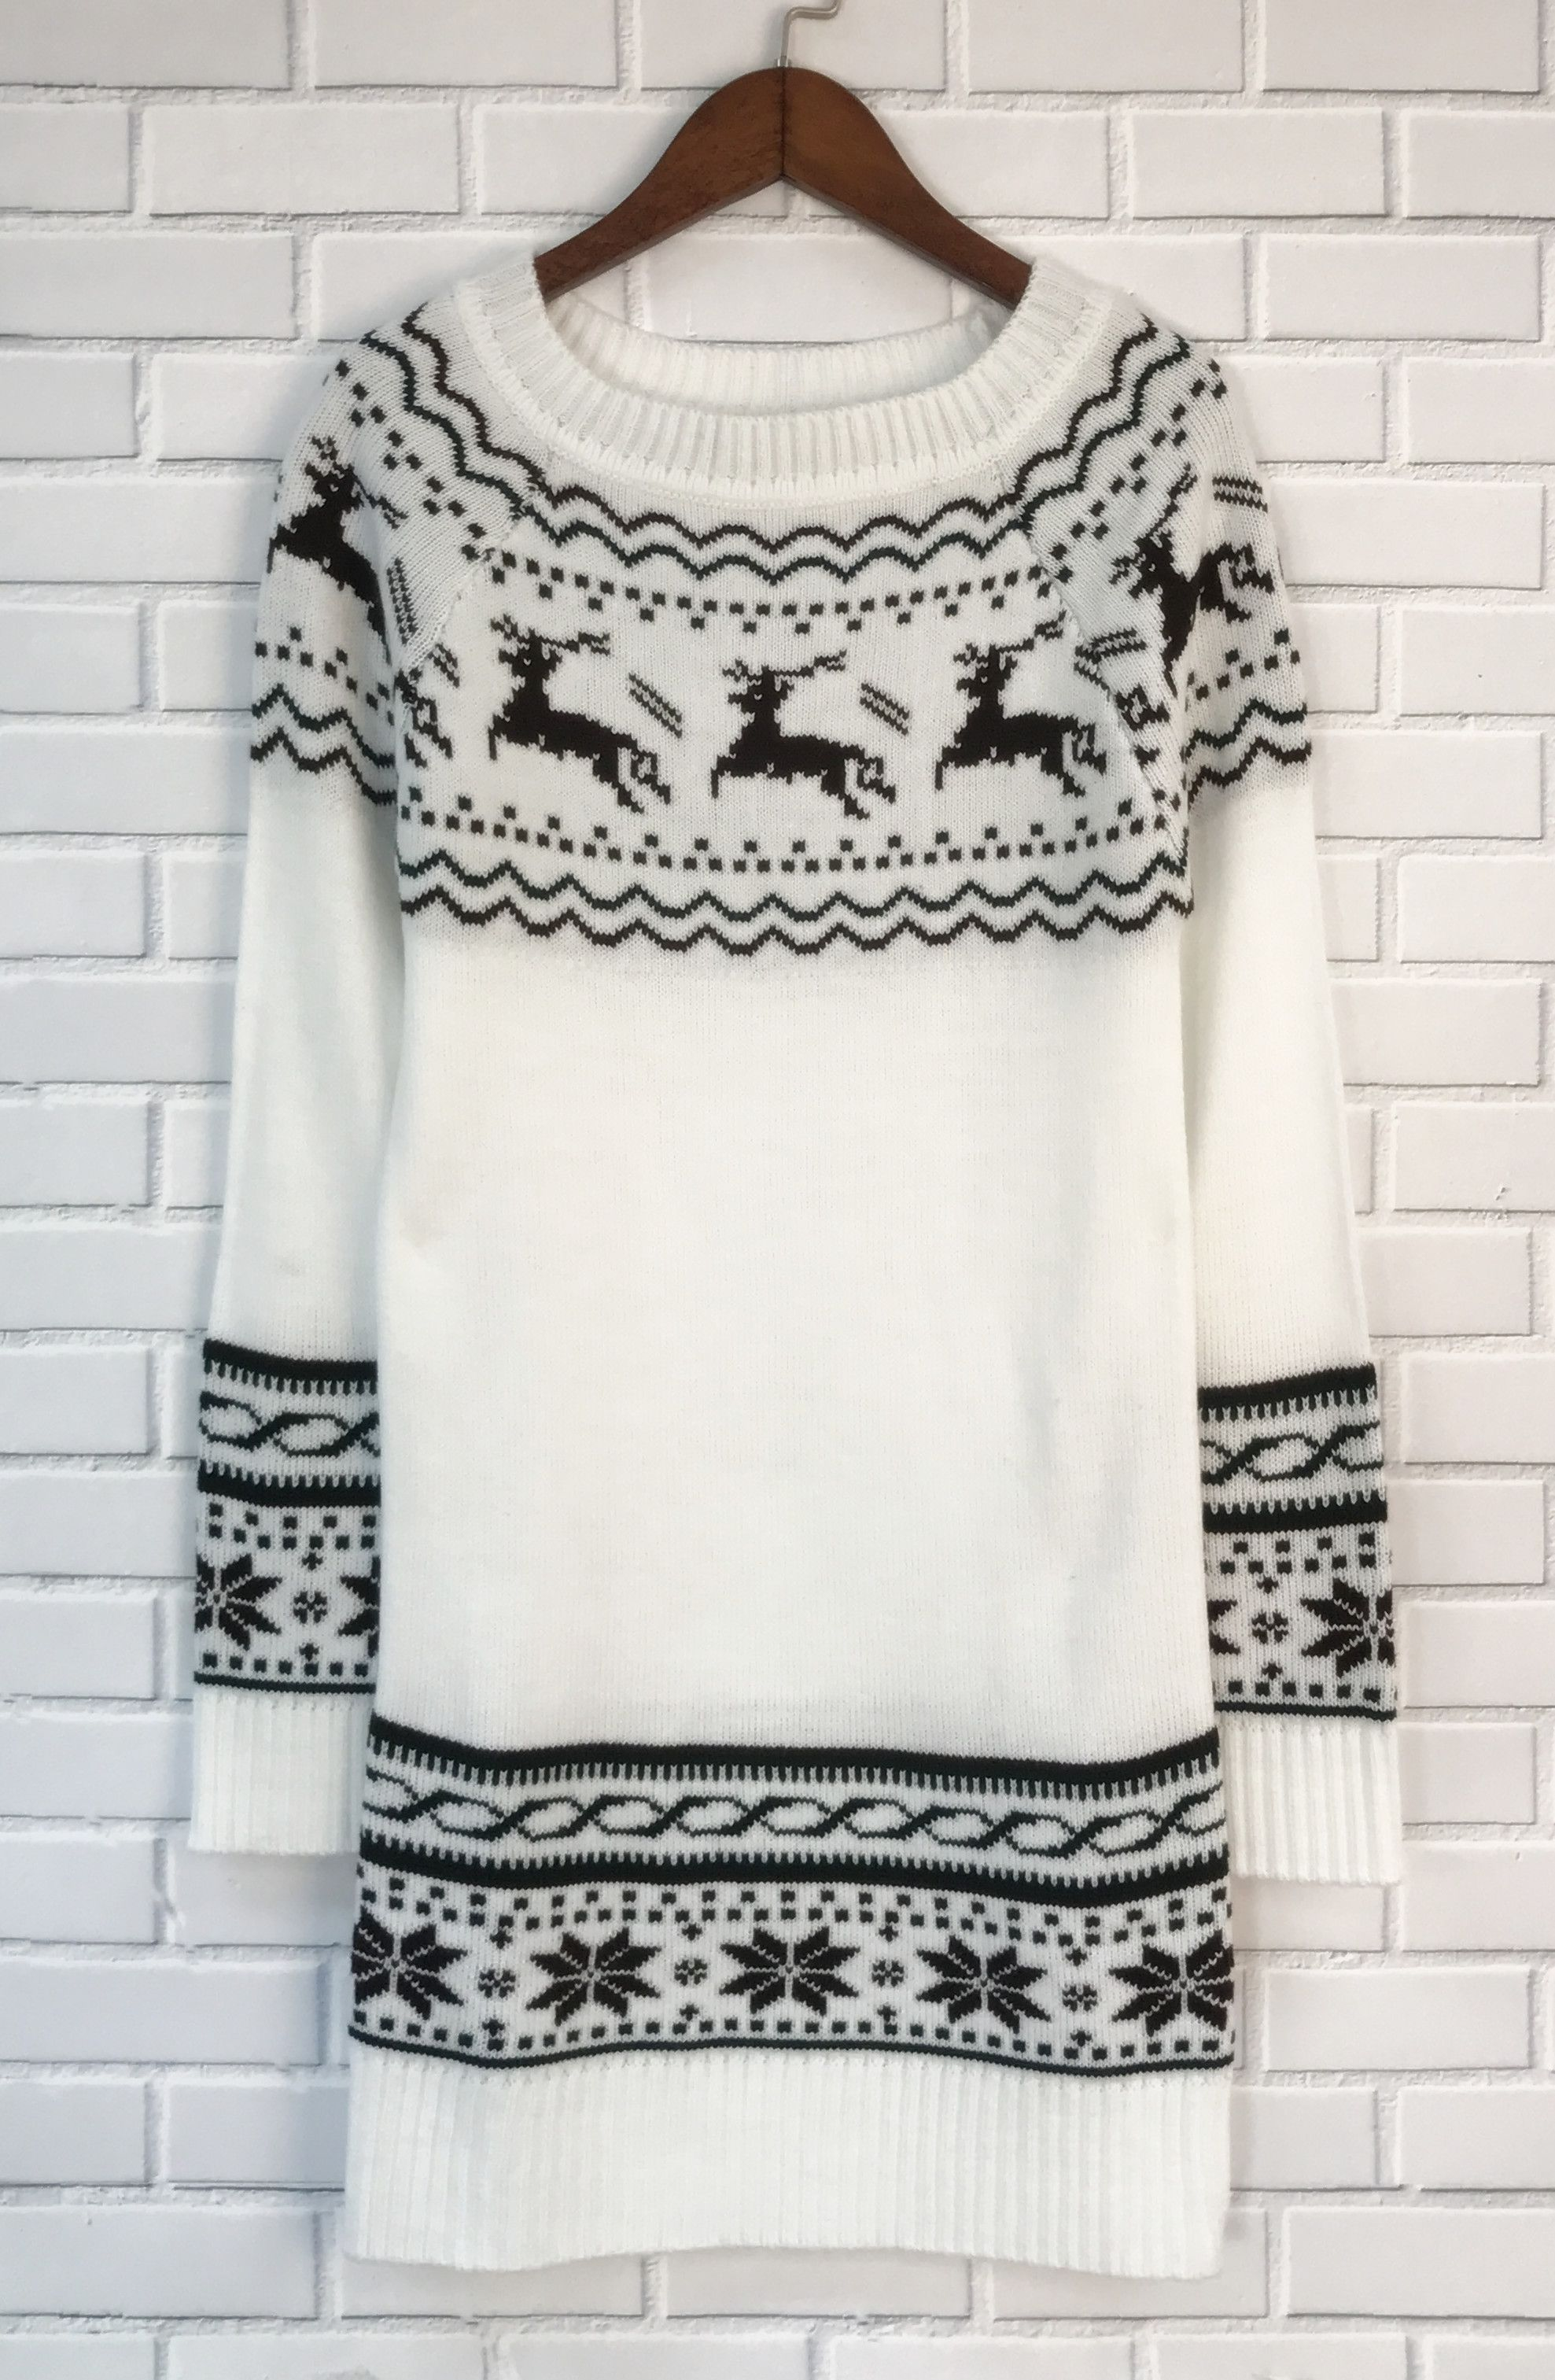 Prepare for christmas a midweight knit sweater featuring a fair